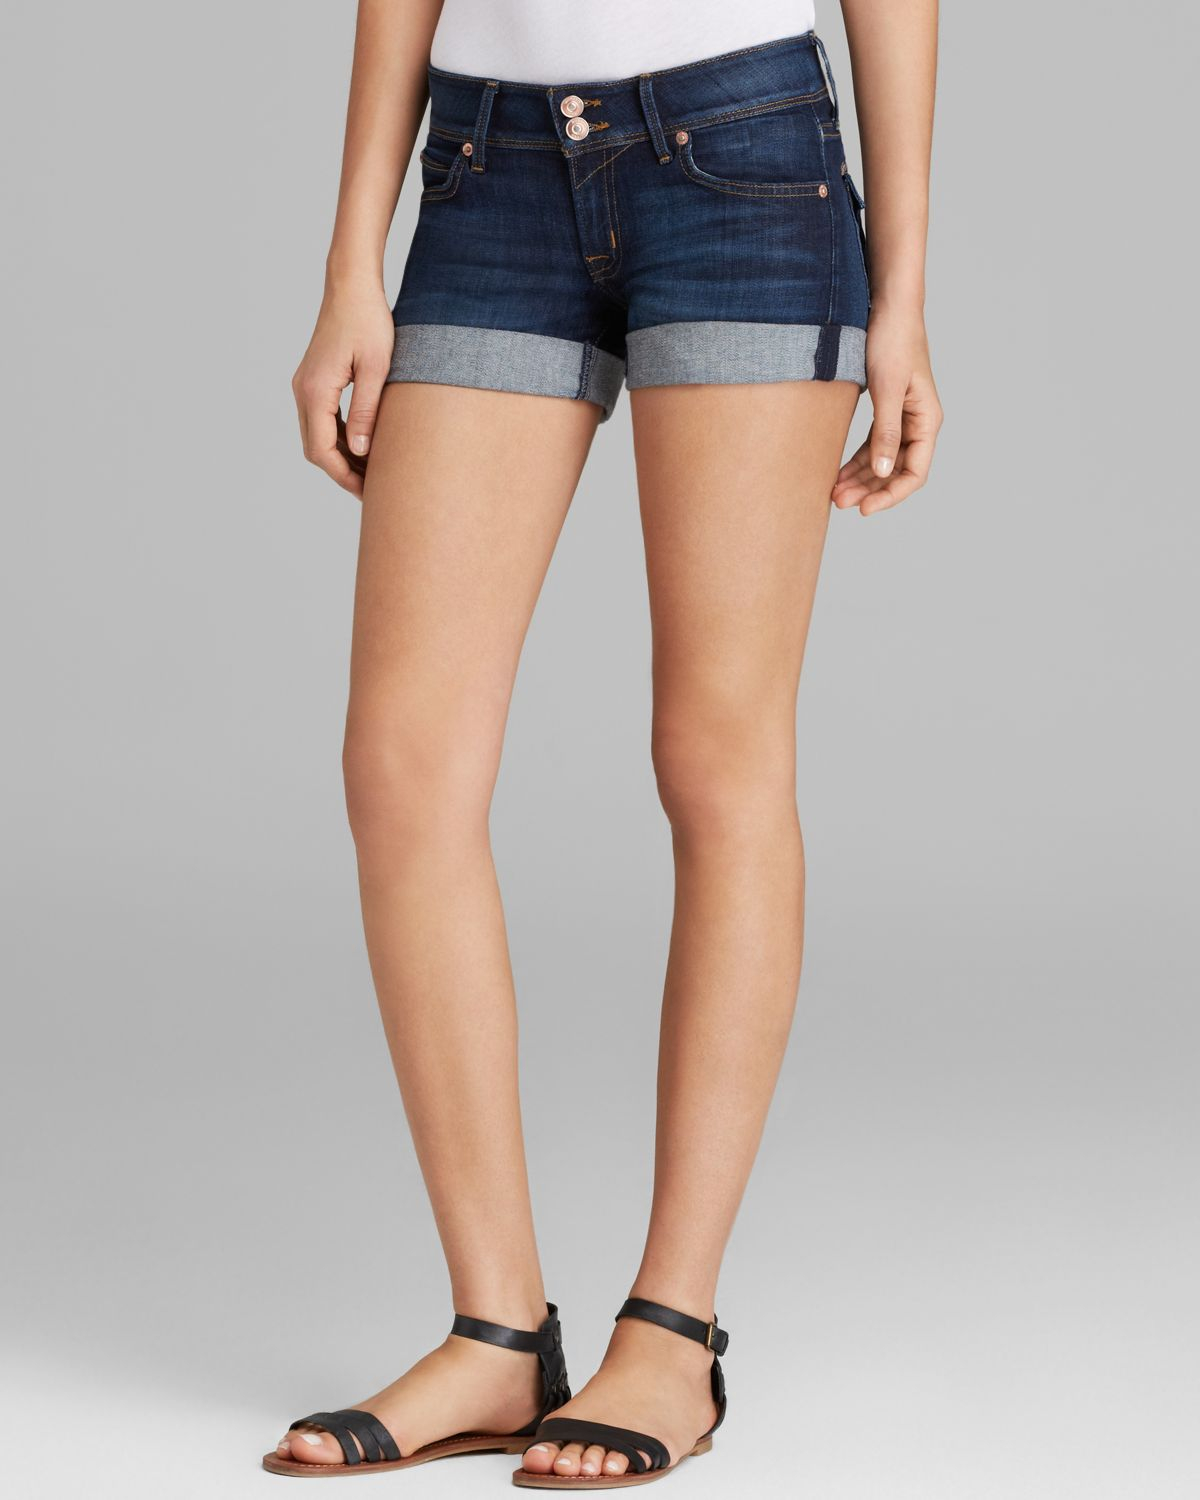 Hudson jeans Croxley Mid Thigh Shorts In Iconic in Blue | Lyst